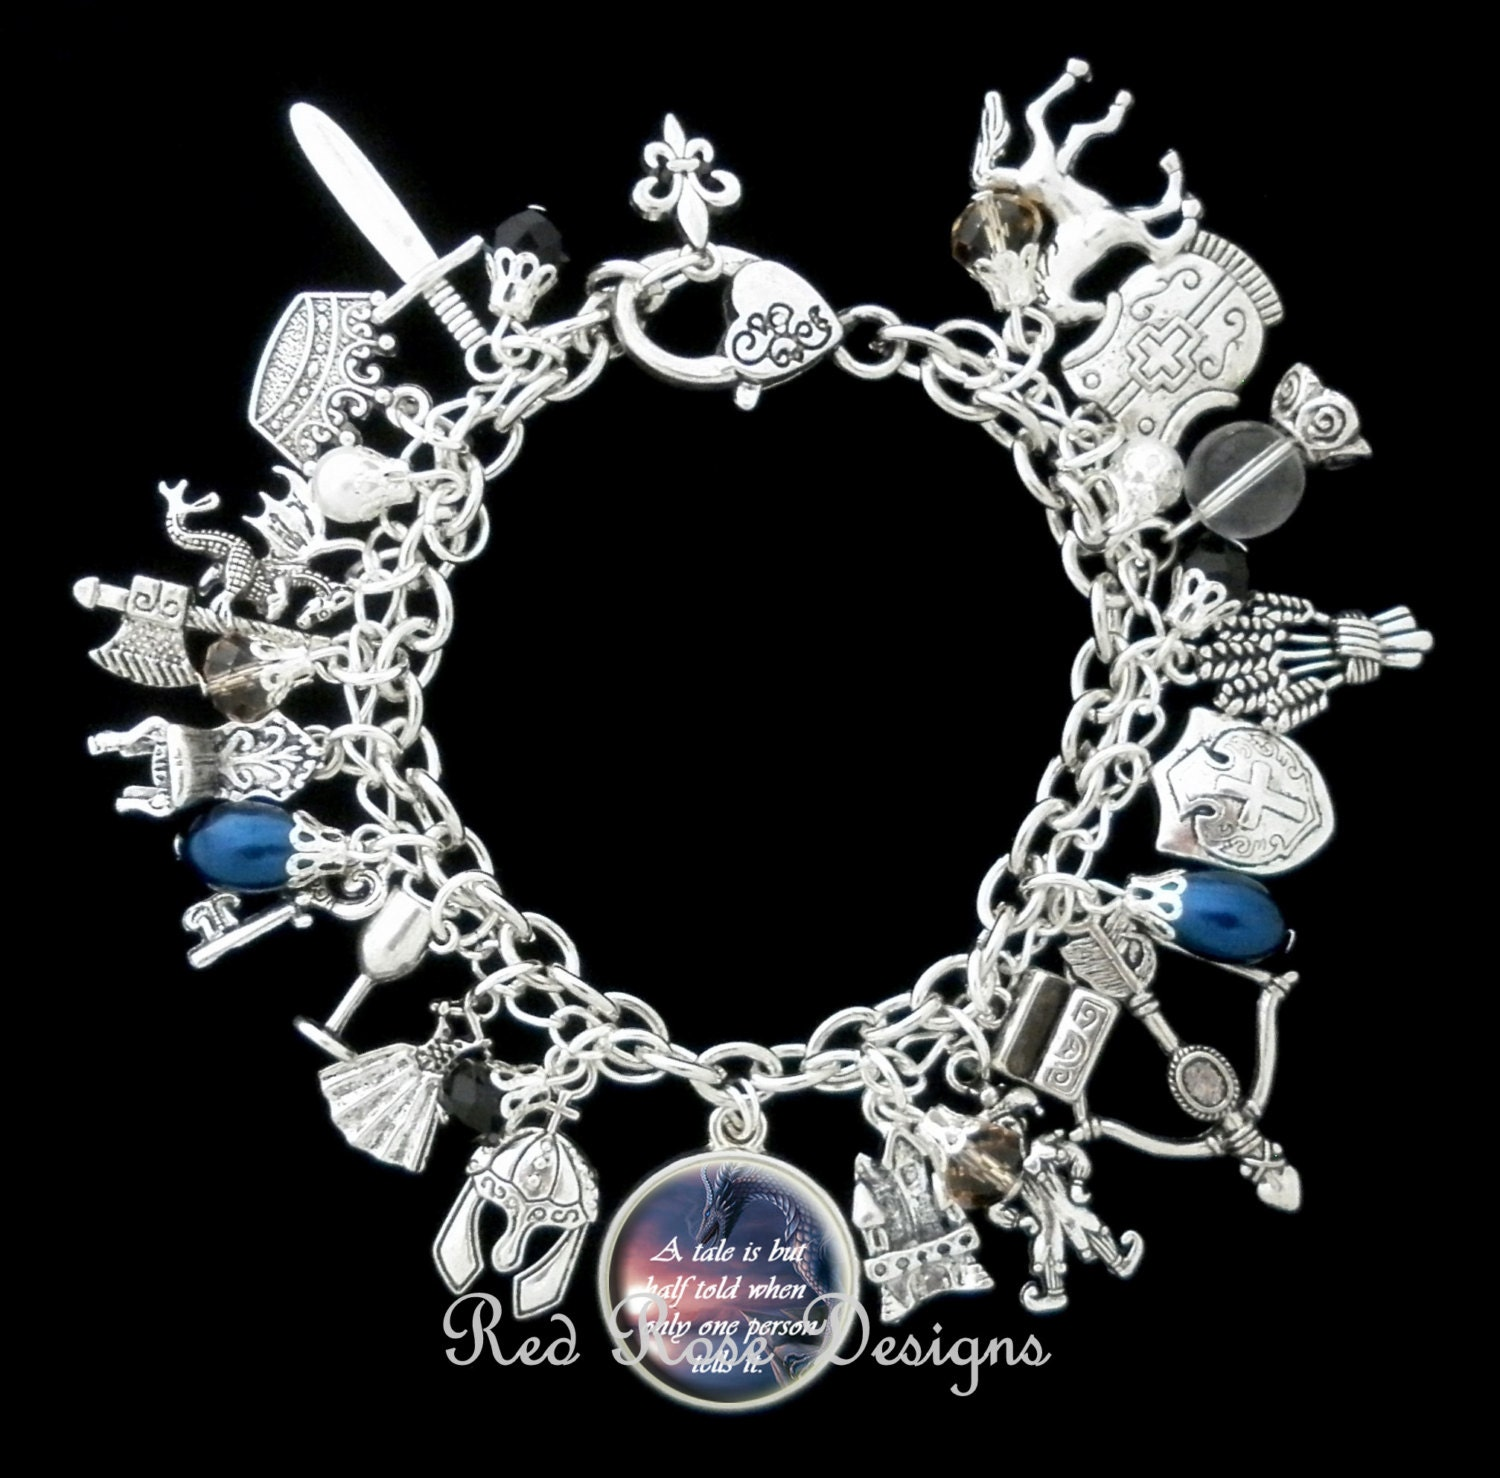 Medieval Times Quotes: Medieval Times Themed Charm Bracelet Dragon Knight Quote